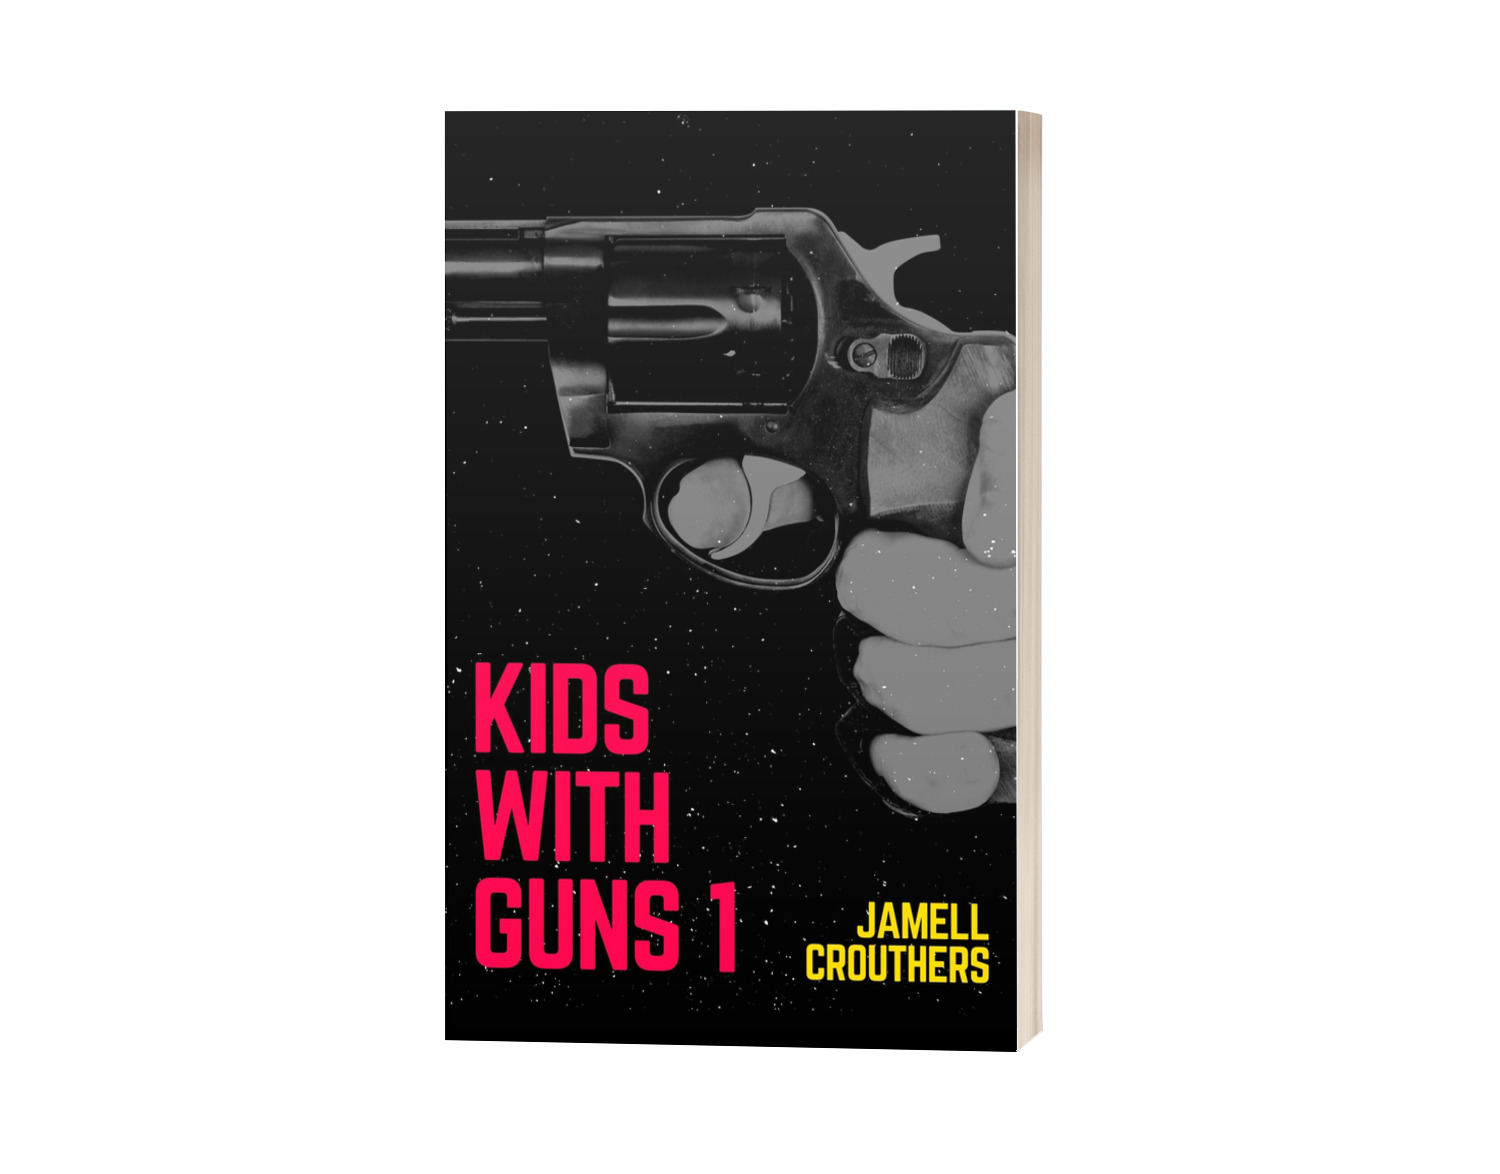 Kids With Guns Part 1 is a defining book where Matthew and Max walk into school with an arsenal of guns and attempt to take out anyone in their path.  The story is told from various perspectives...